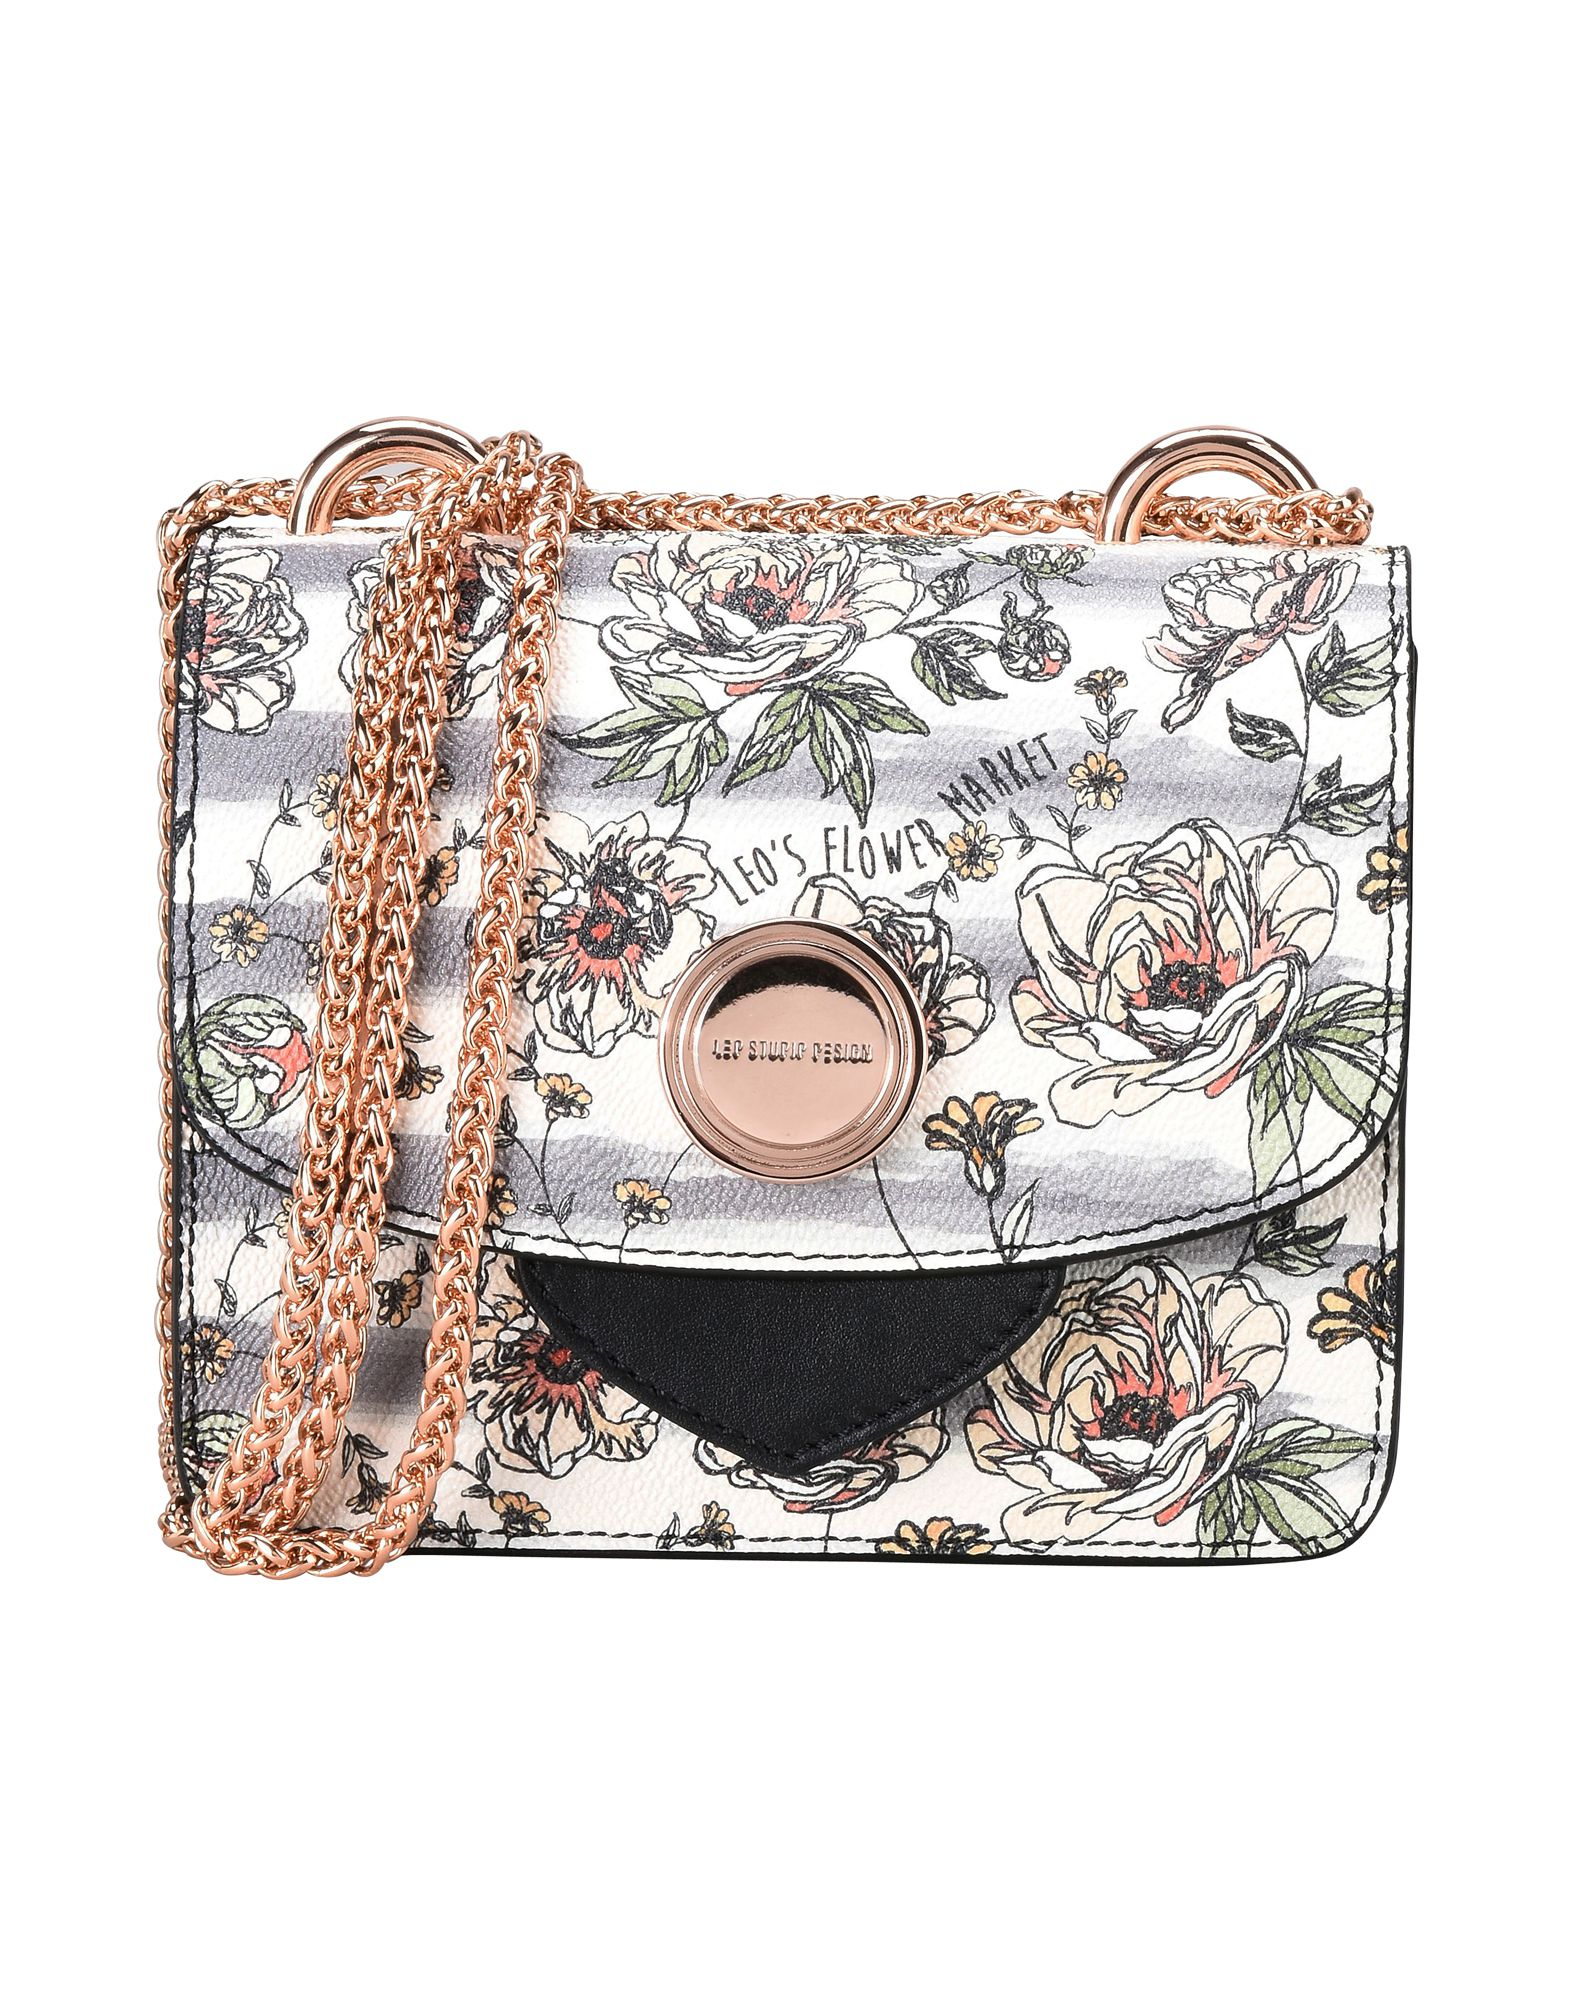 Borsa A Tracolla Leo Studio Design Mini Shoulder - Donna - Acquista online su